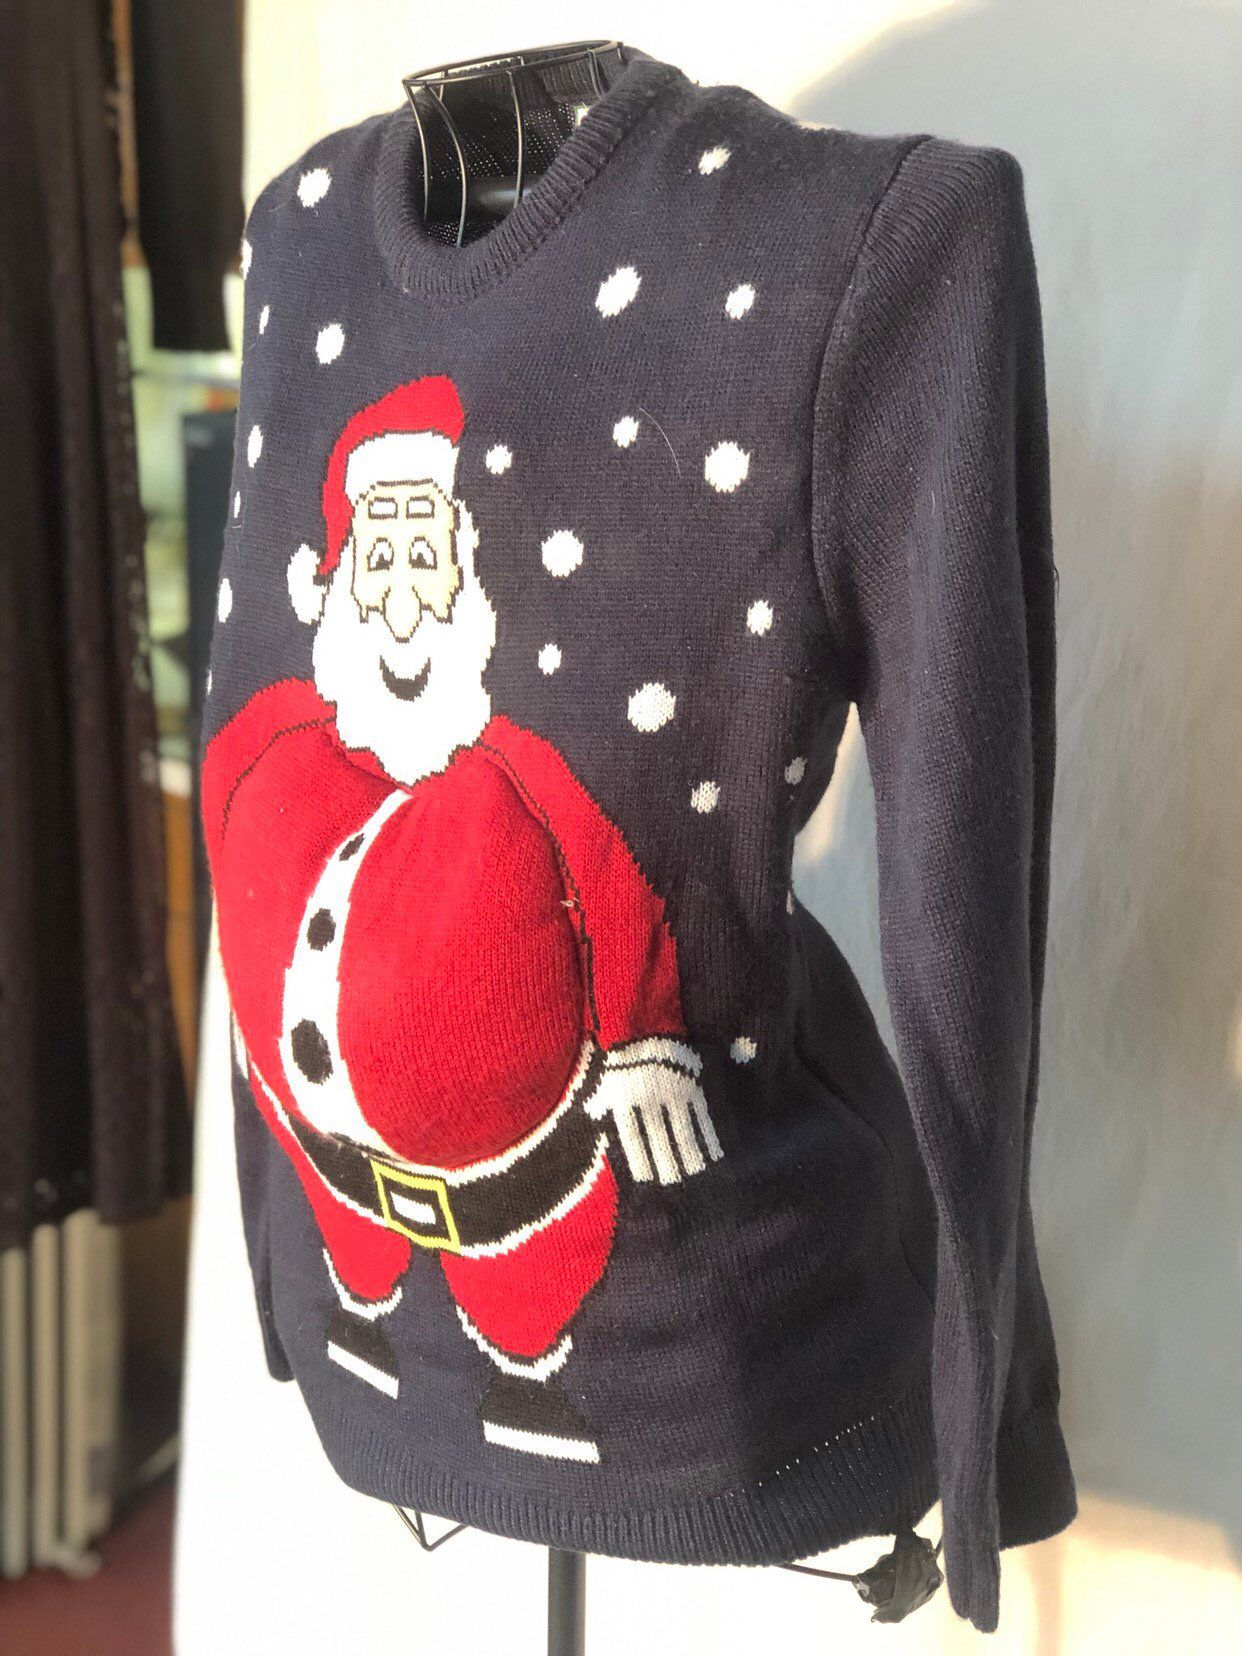 40fd174b0d6 Excited to share this item from my  etsy shop  Santa Claus Sweater with Fat  Belly - unisex ugly Christmas Party Sweater